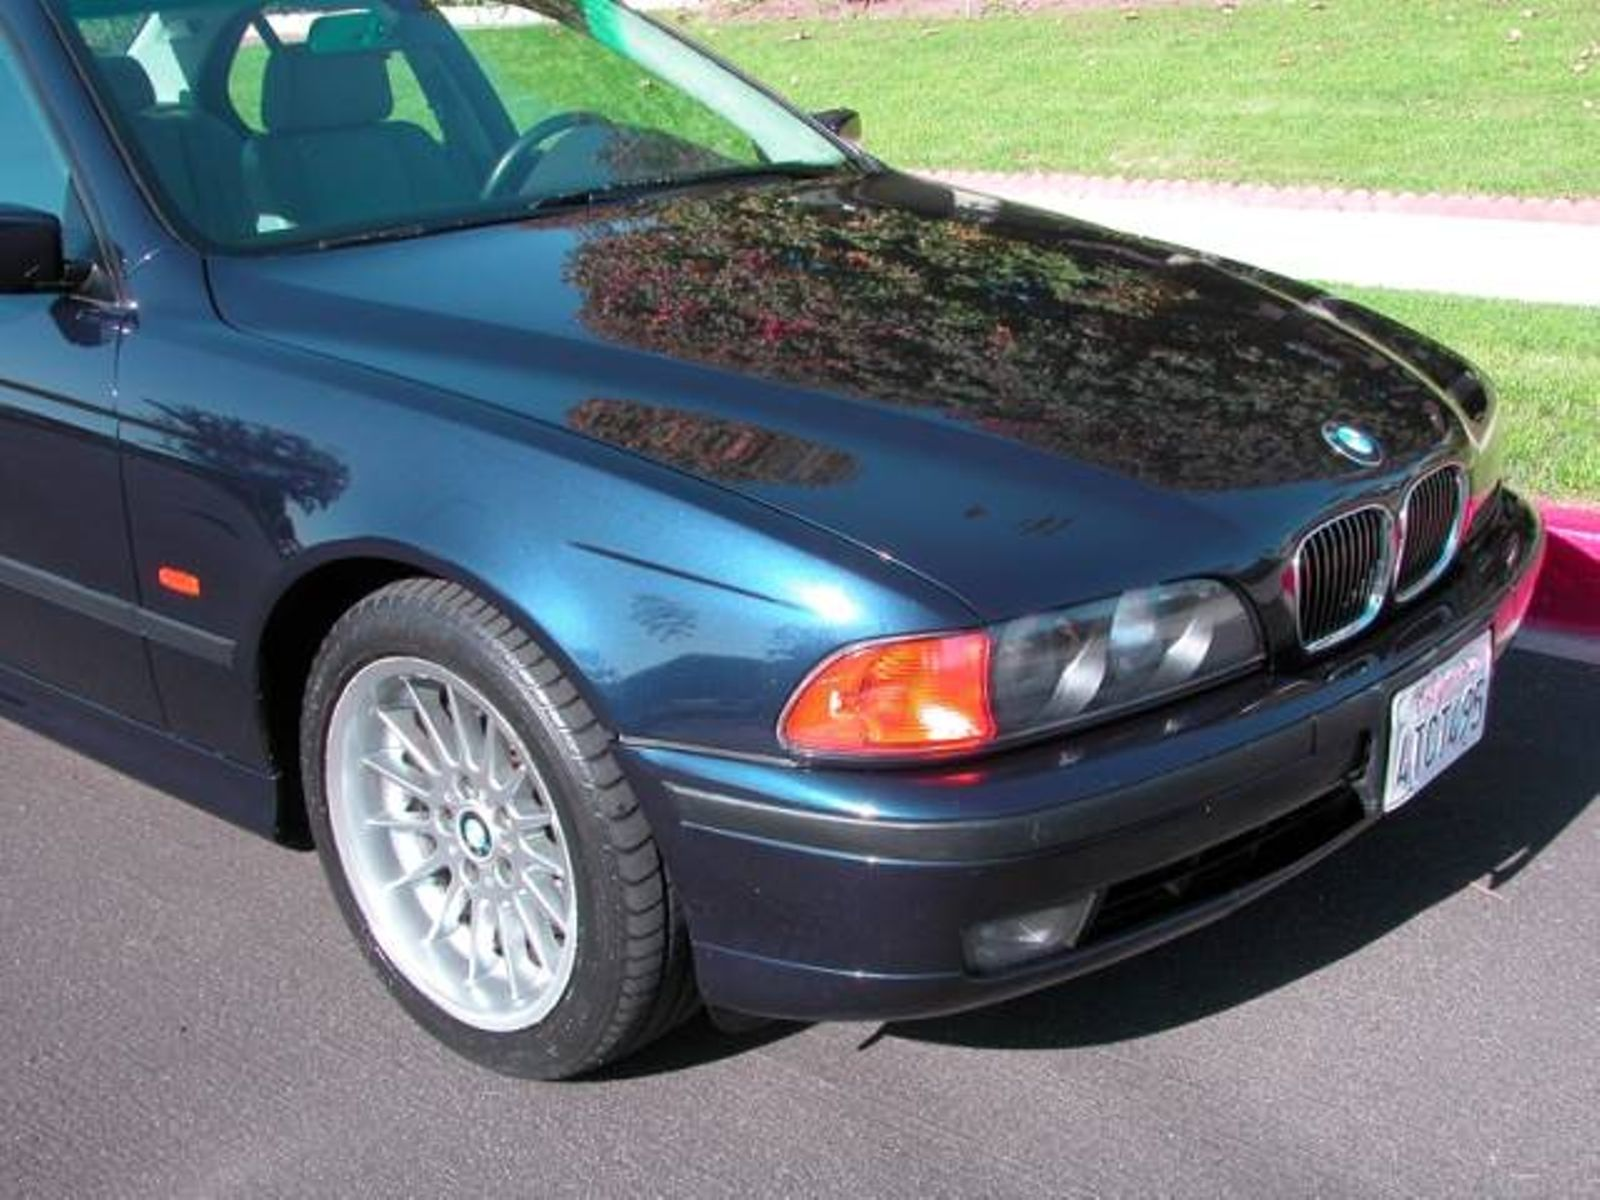 medium resolution of  2000 bmw 540i six speed super clean only 37000 miles city california auto fitness class benz